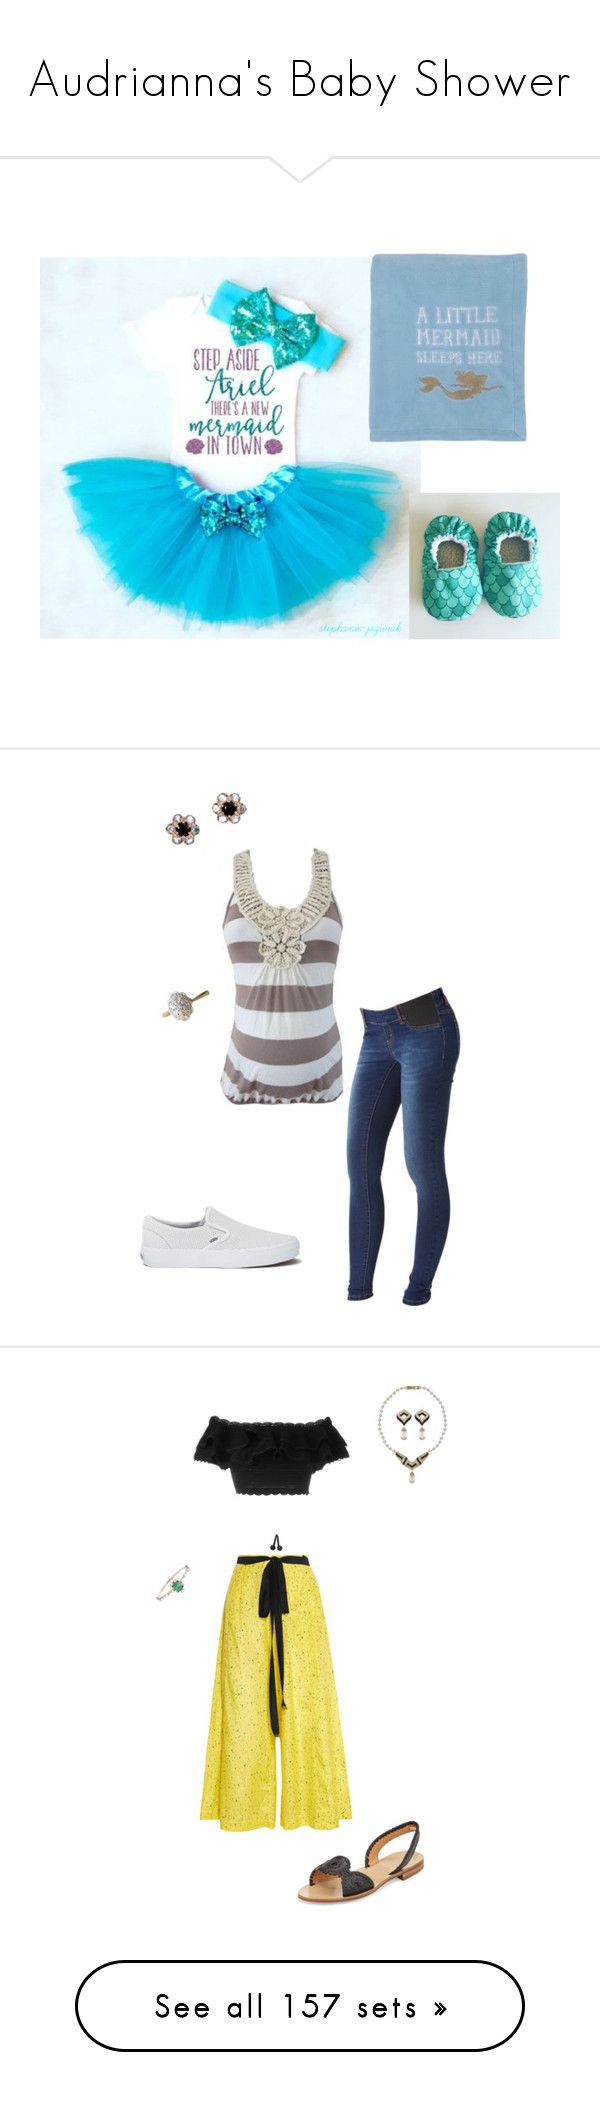 """""""Audrianna's Baby Shower"""" by thesassystewart on Polyvore featuring Mama.licious, Arik Kastan, Vans, Proenza Schouler, Alexander McQueen, Jack Rogers, Kataoka, Vintage, Boohoo and Alessandro Dell'Acqua"""